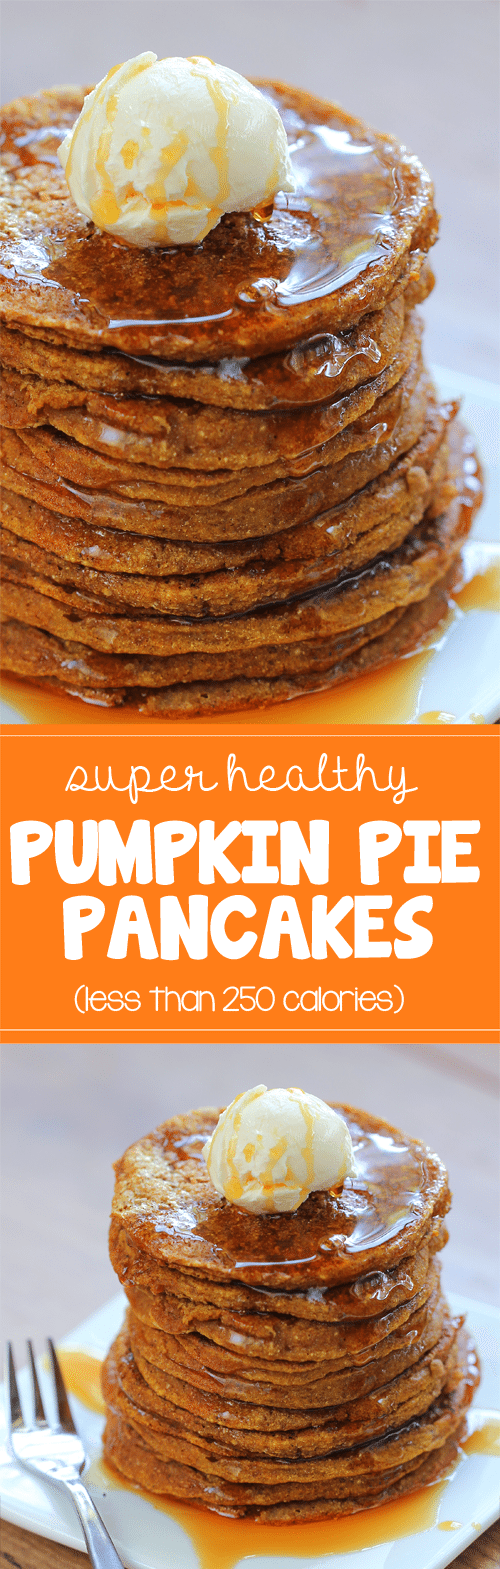 Super light & fluffy pumpkin pancakes from @choccoveredkt... for less than 250 calories. Full recipe: https://chocolatecoveredkatie.com/2013/11/17/pumpkin-pancakes/